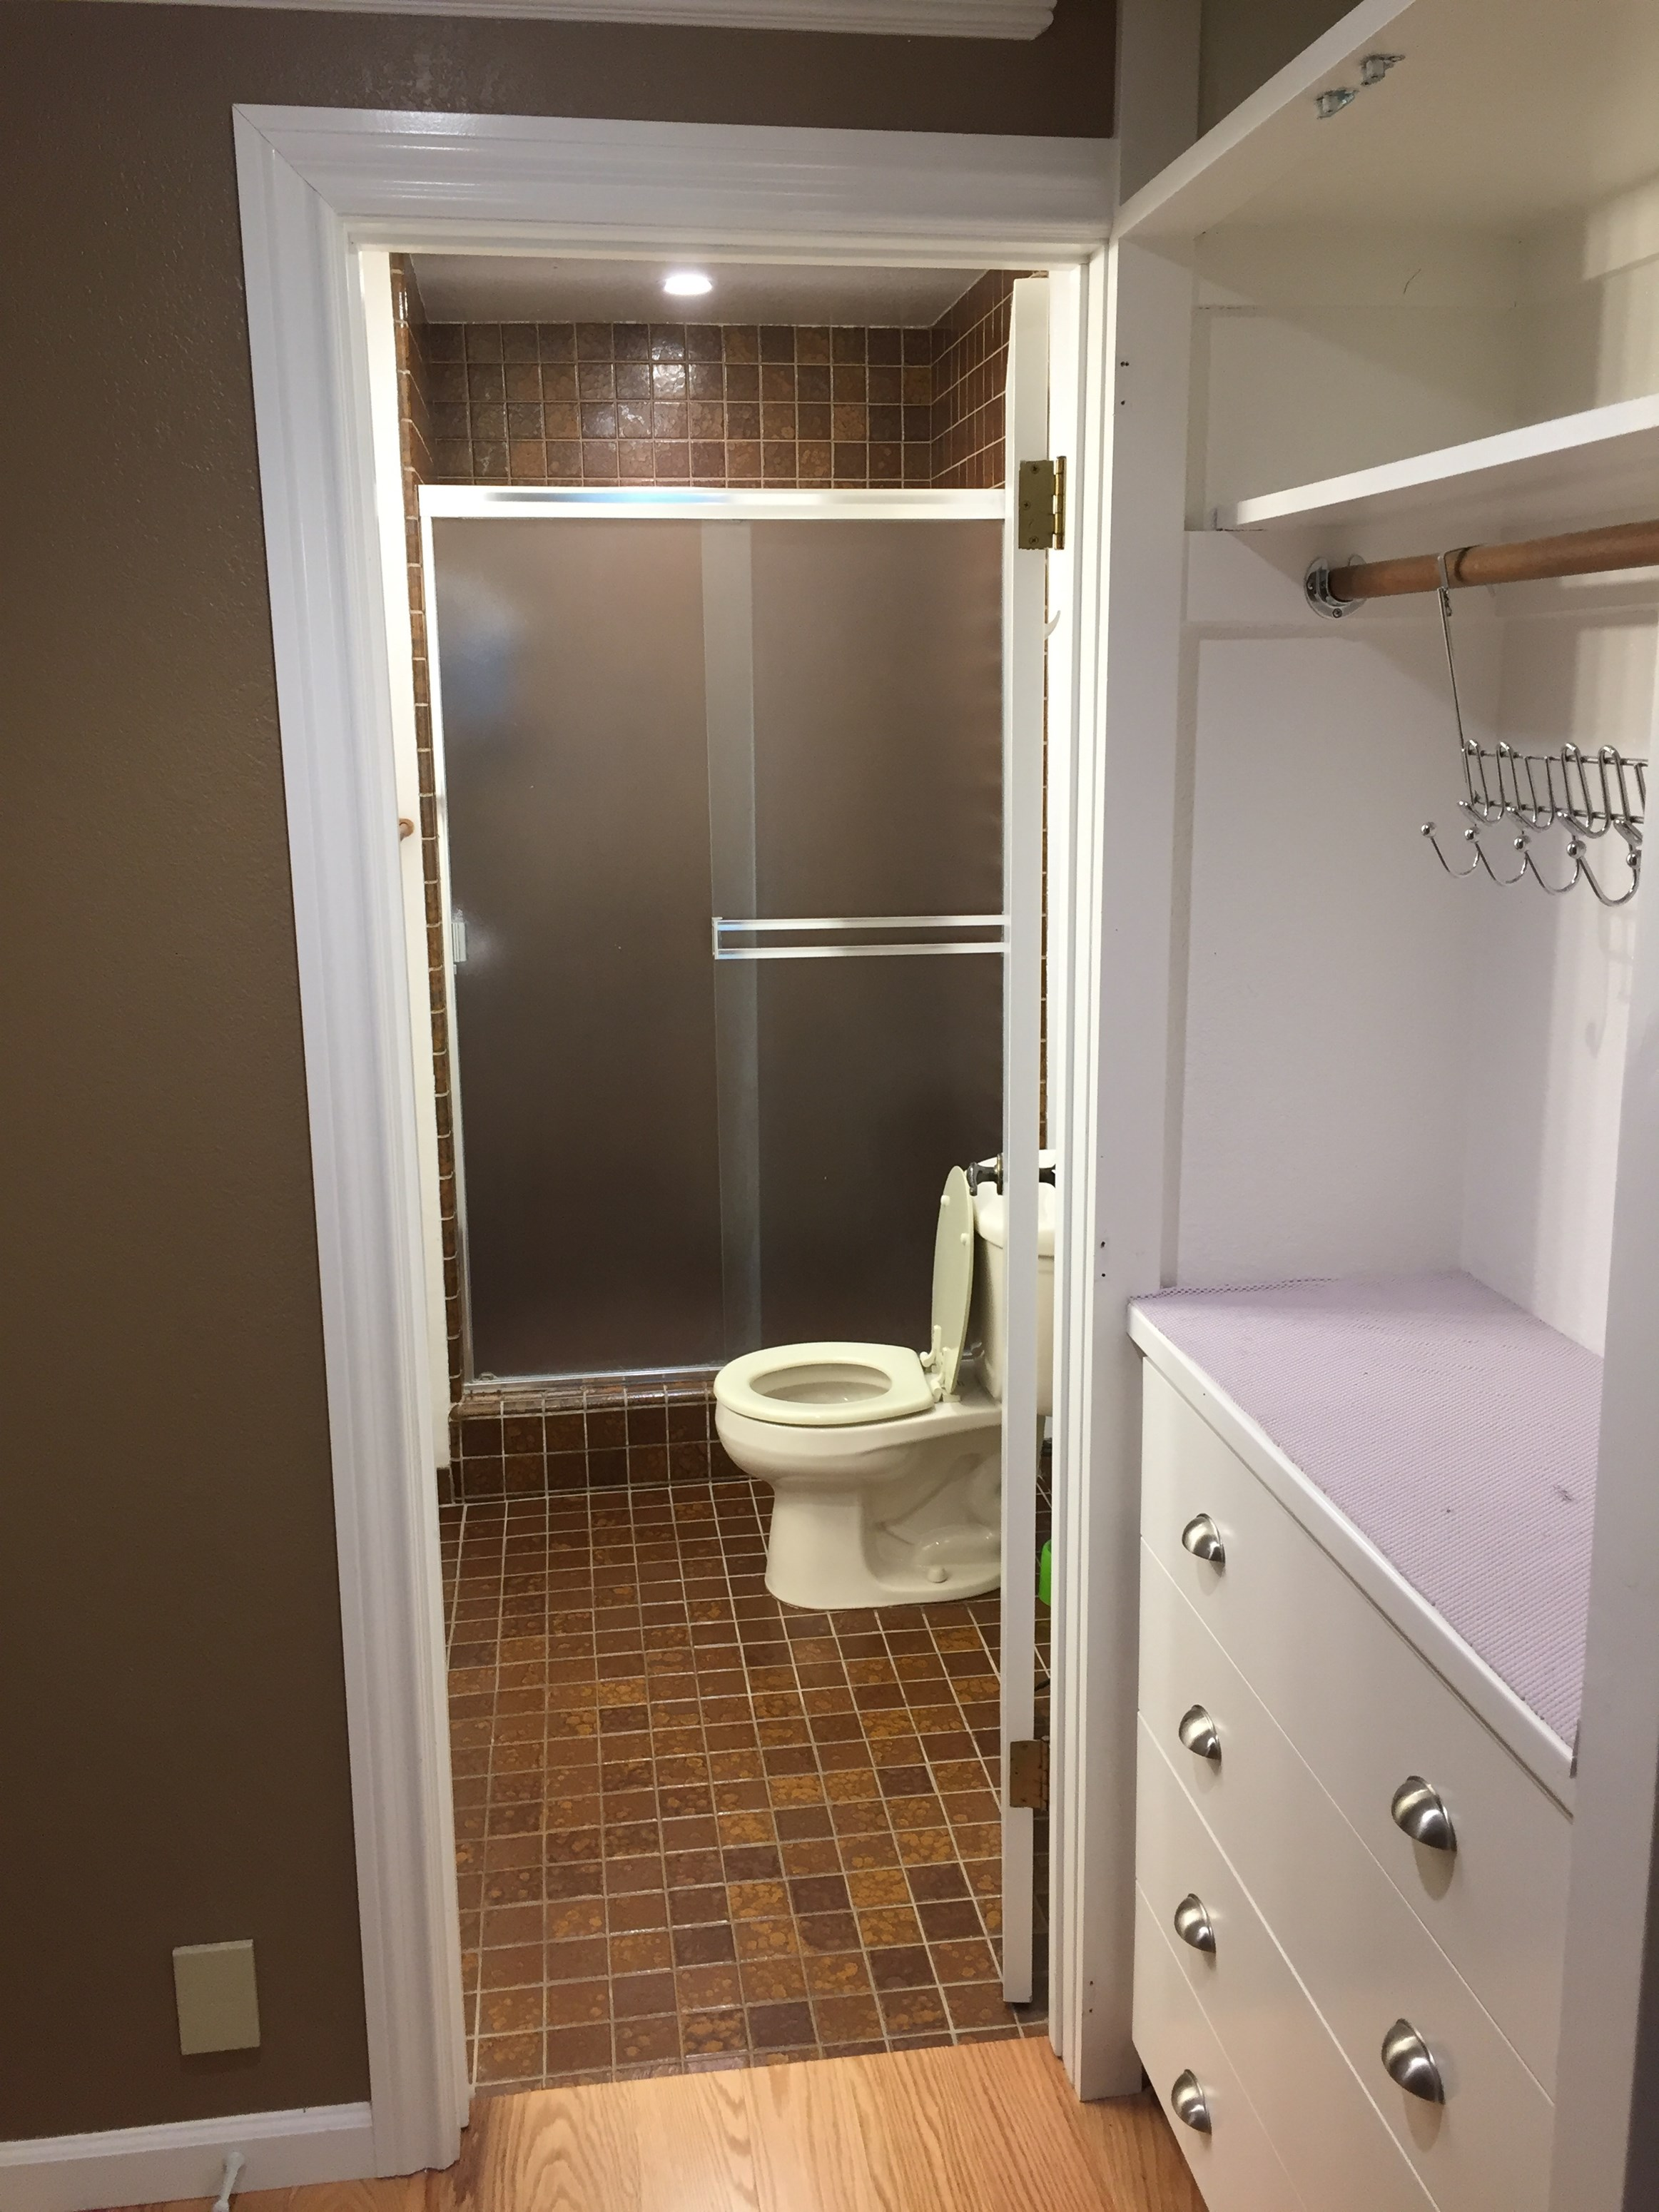 Looking For A Roommate To Take A Single Room In A 3B 2B Apartment